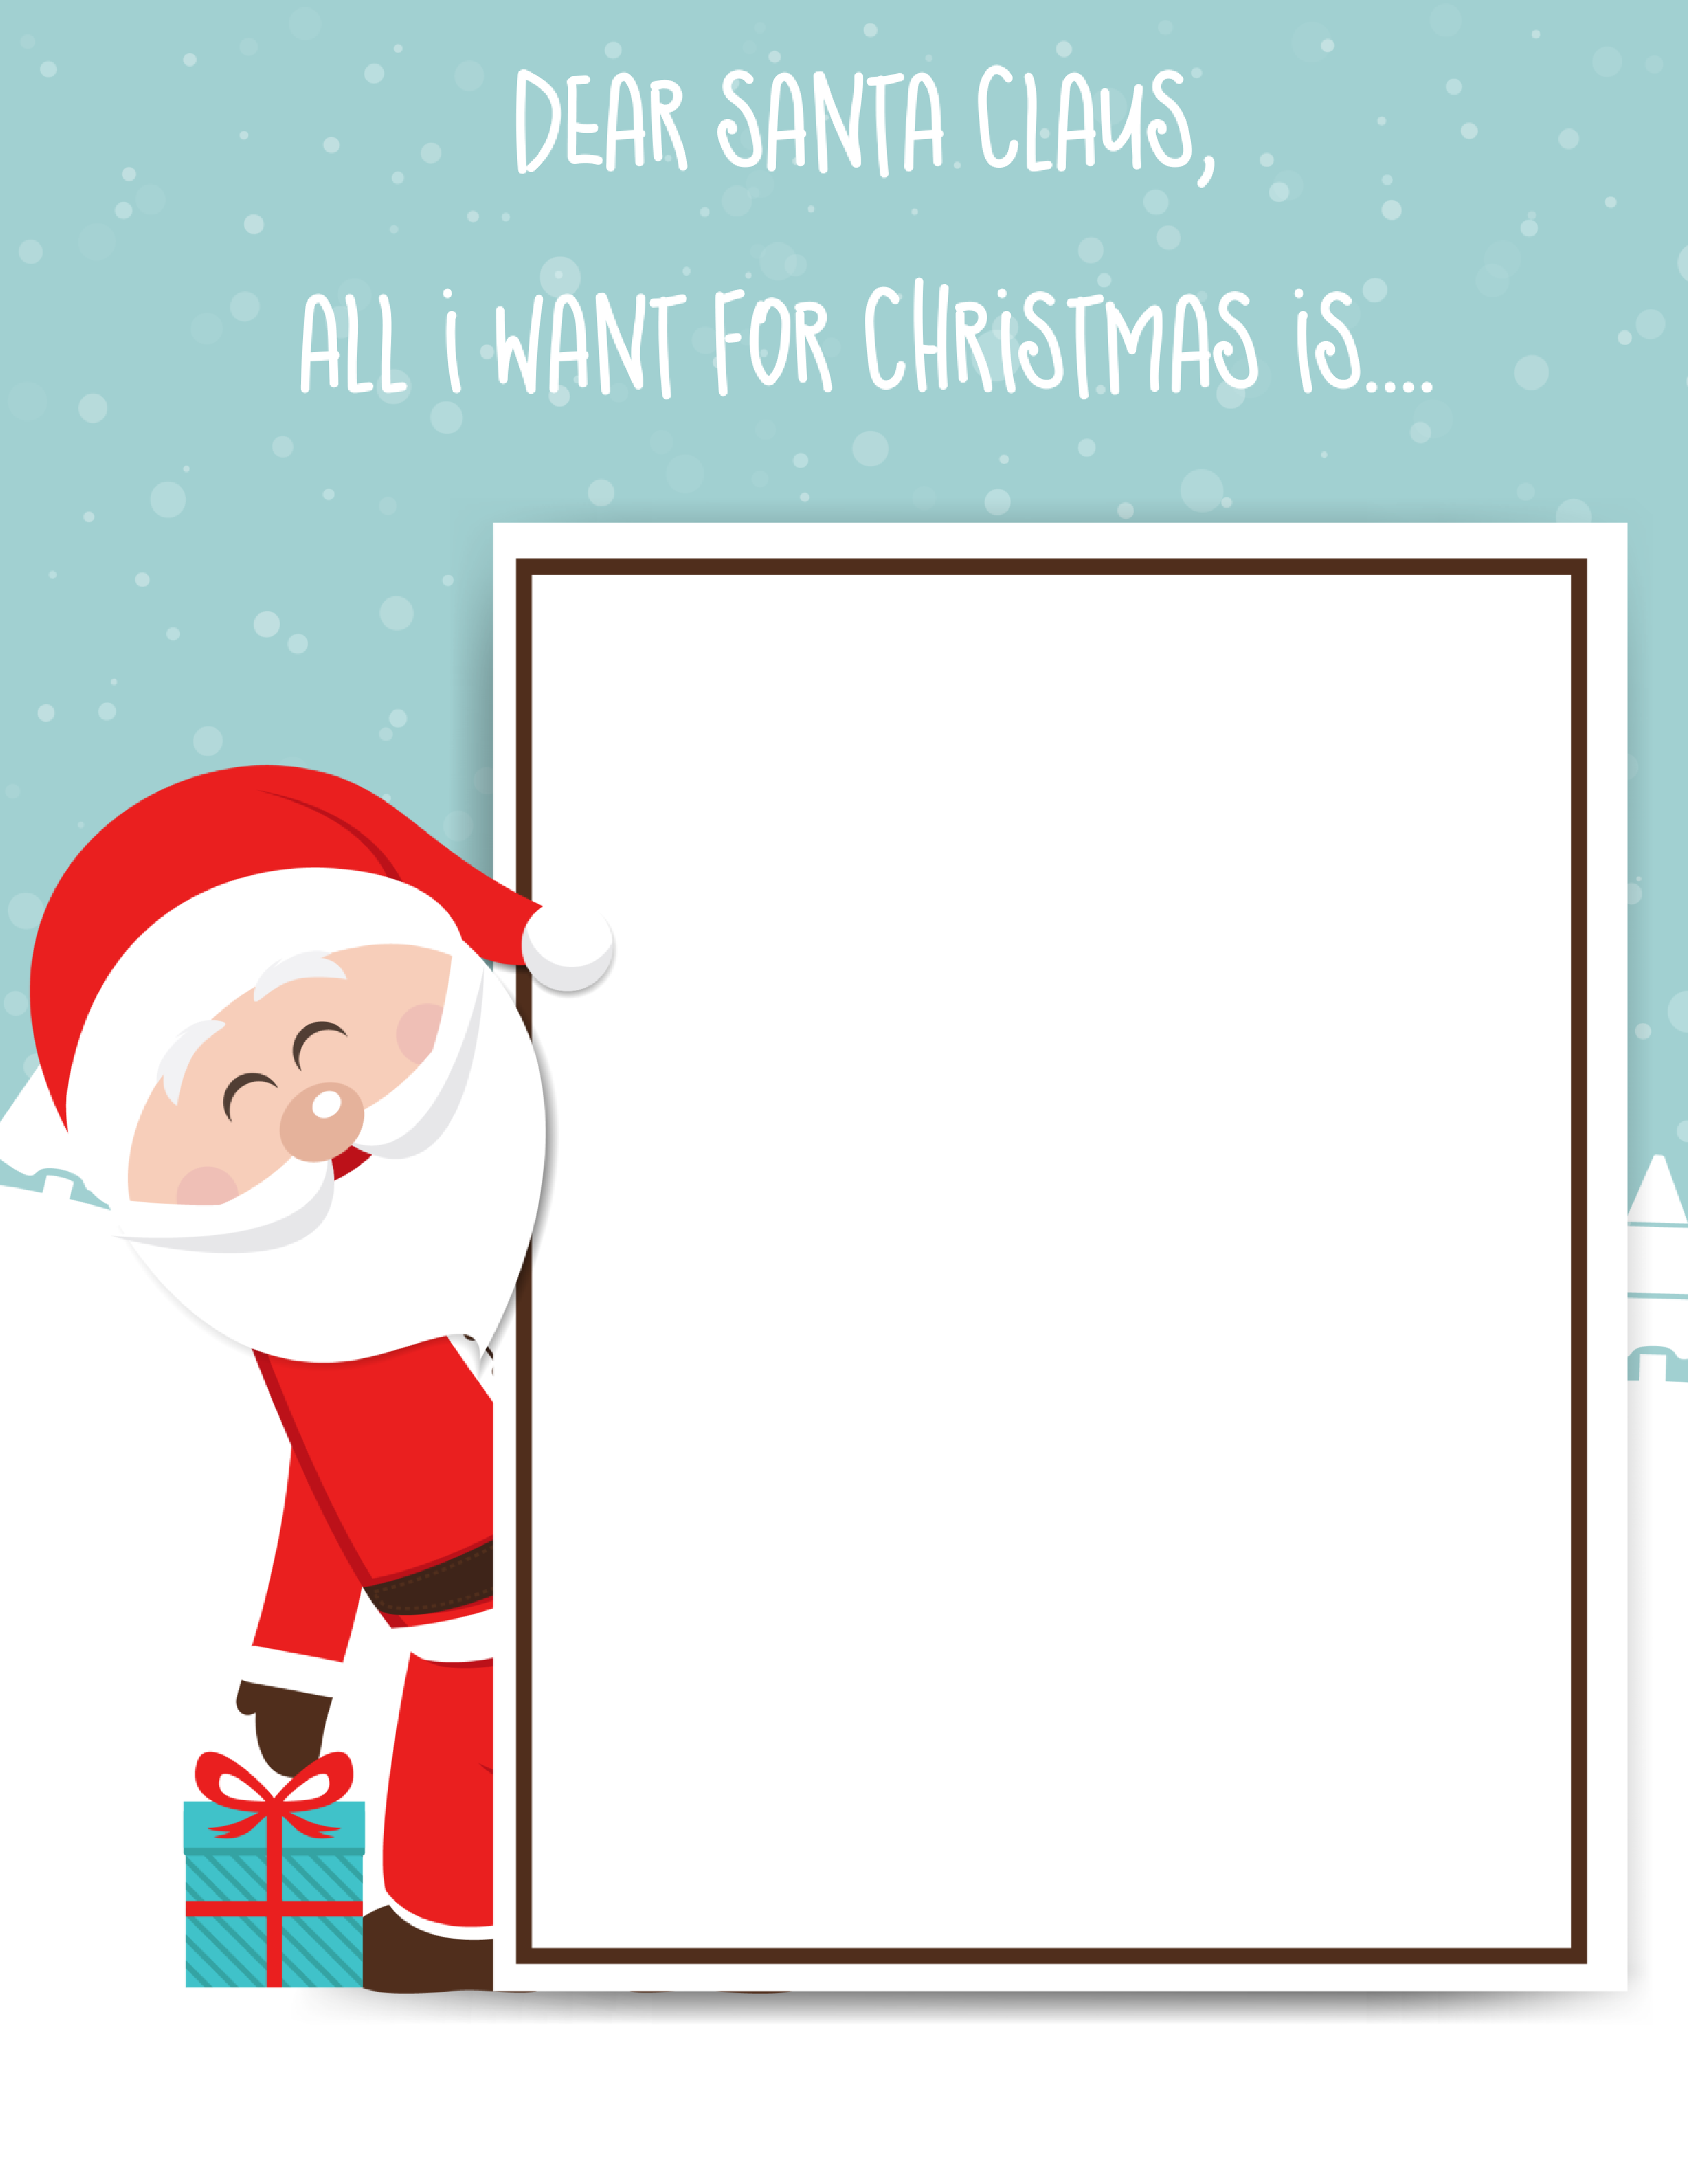 Santa Claus Letter Template for kids, draw a picture, write a letter, or create a list with this FREE Santa Claus Download